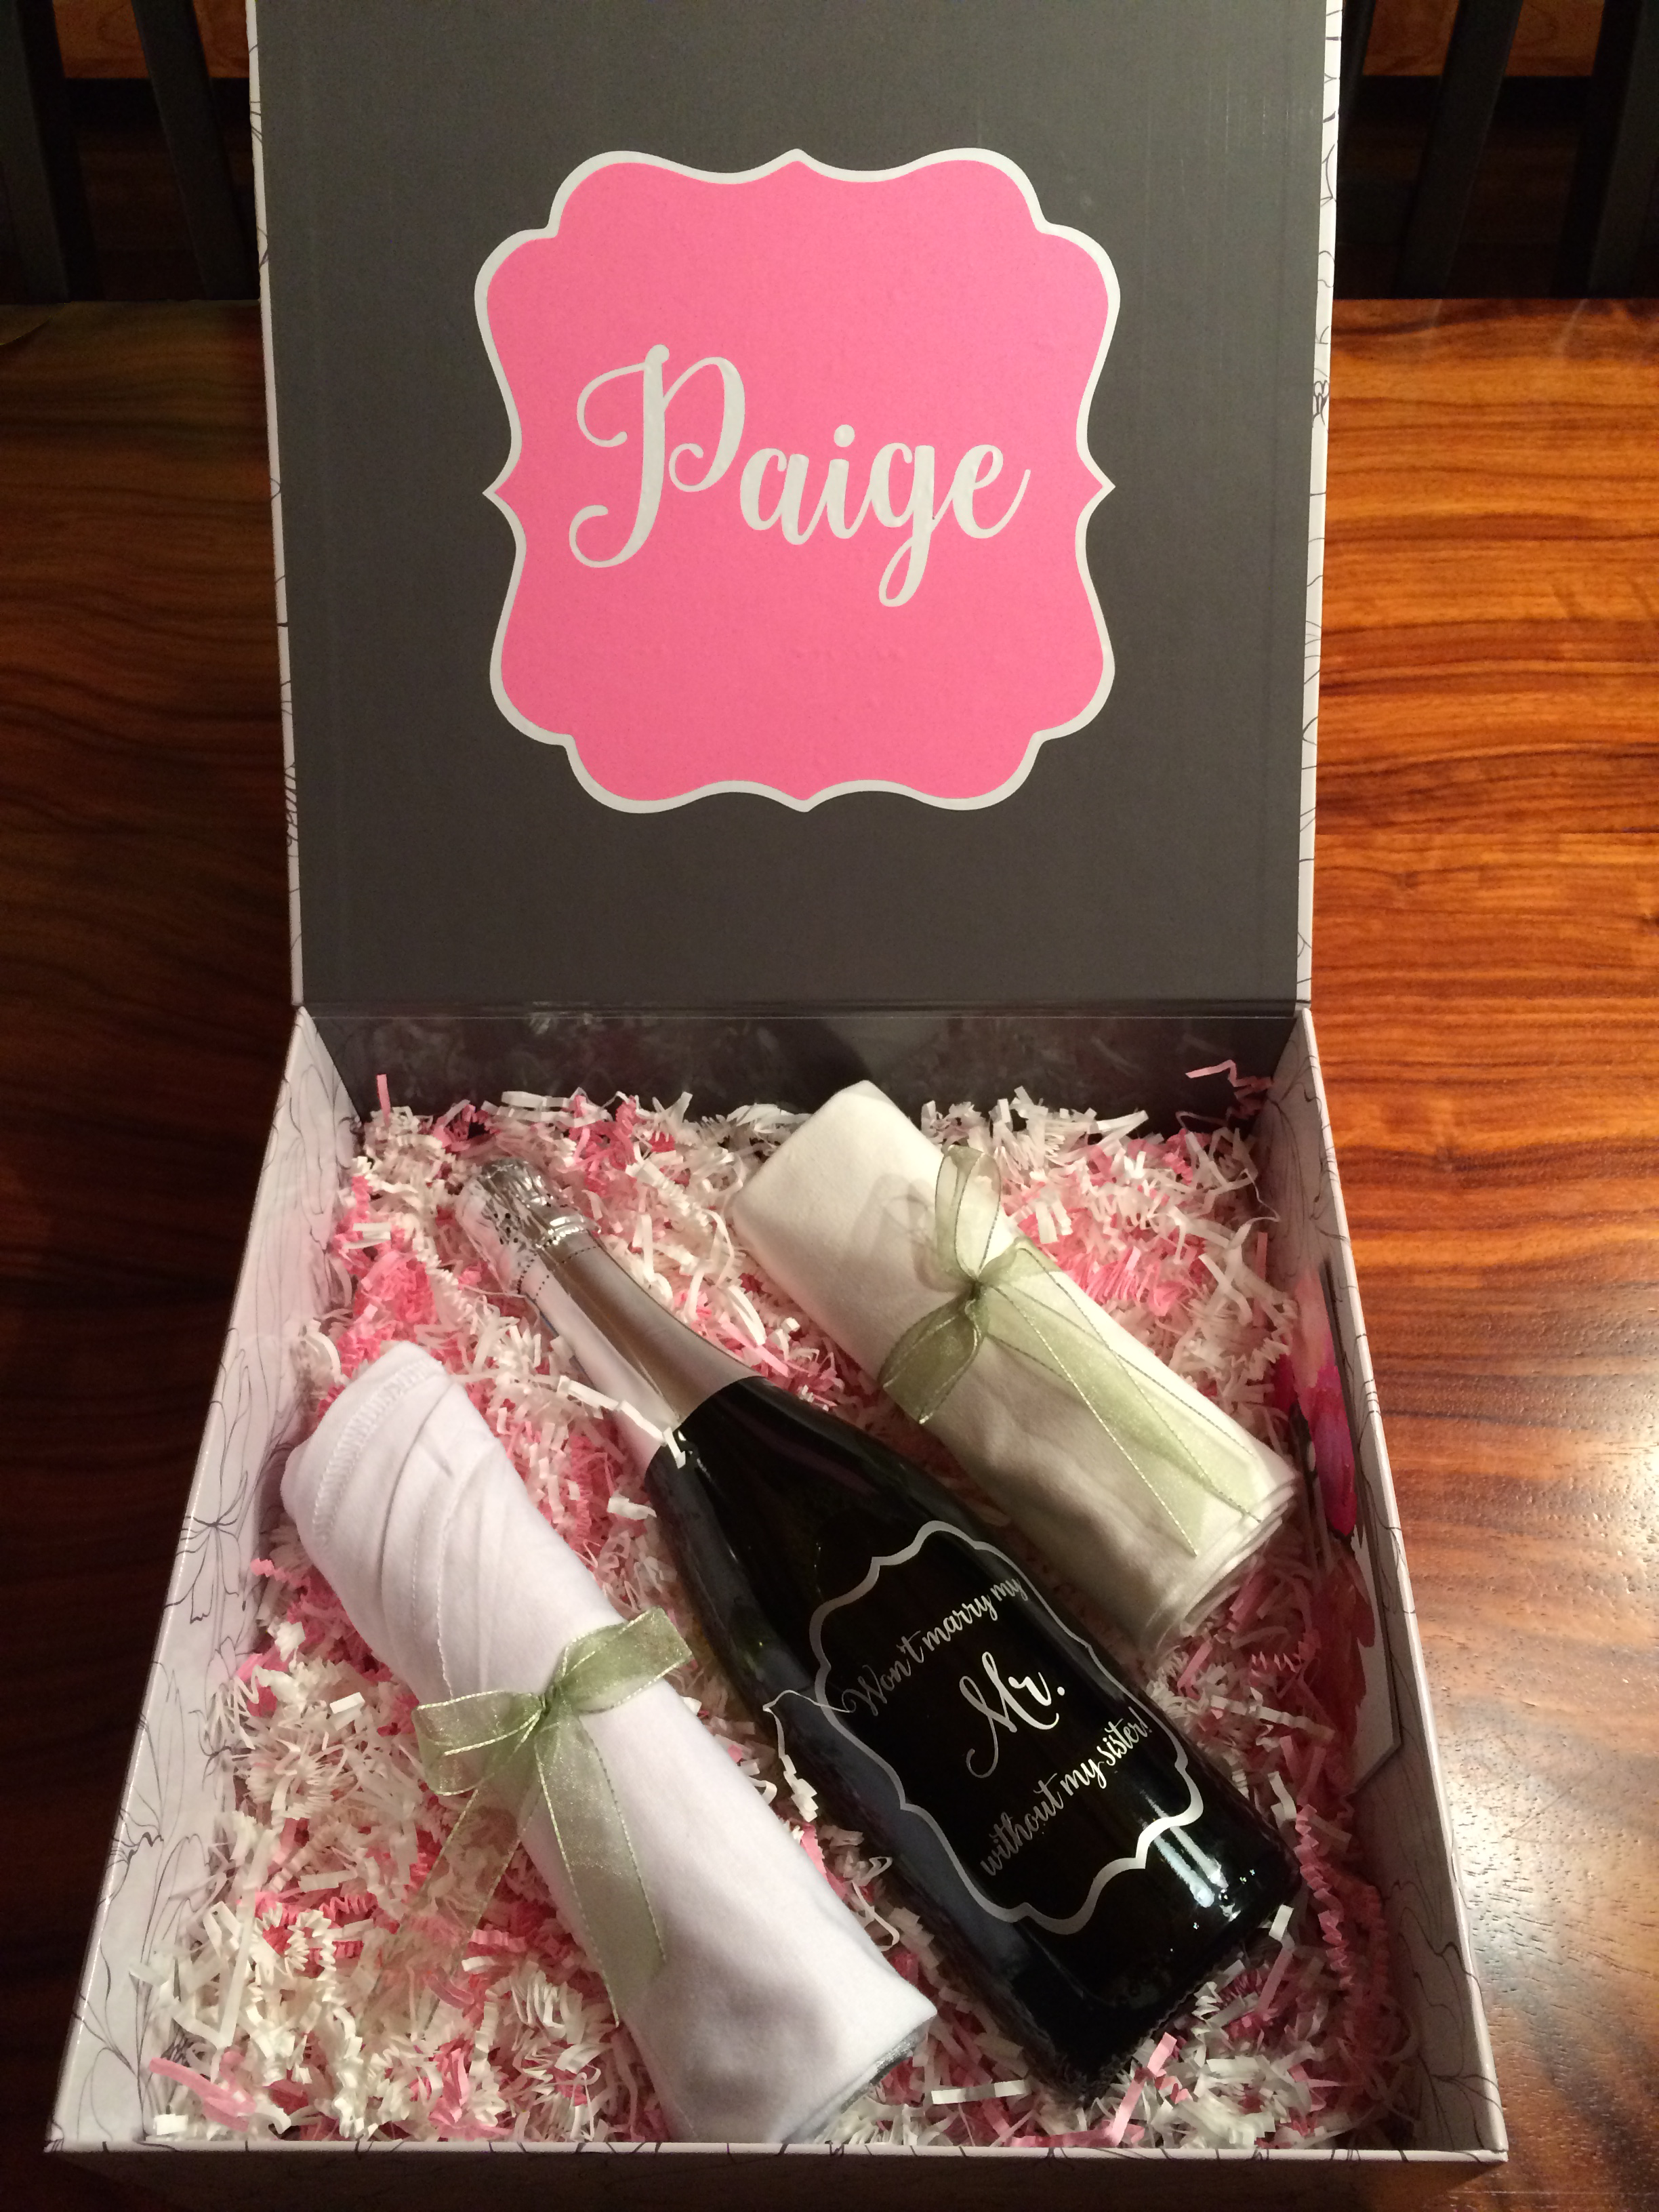 Personalized wine bottle and gift box, ready to go!